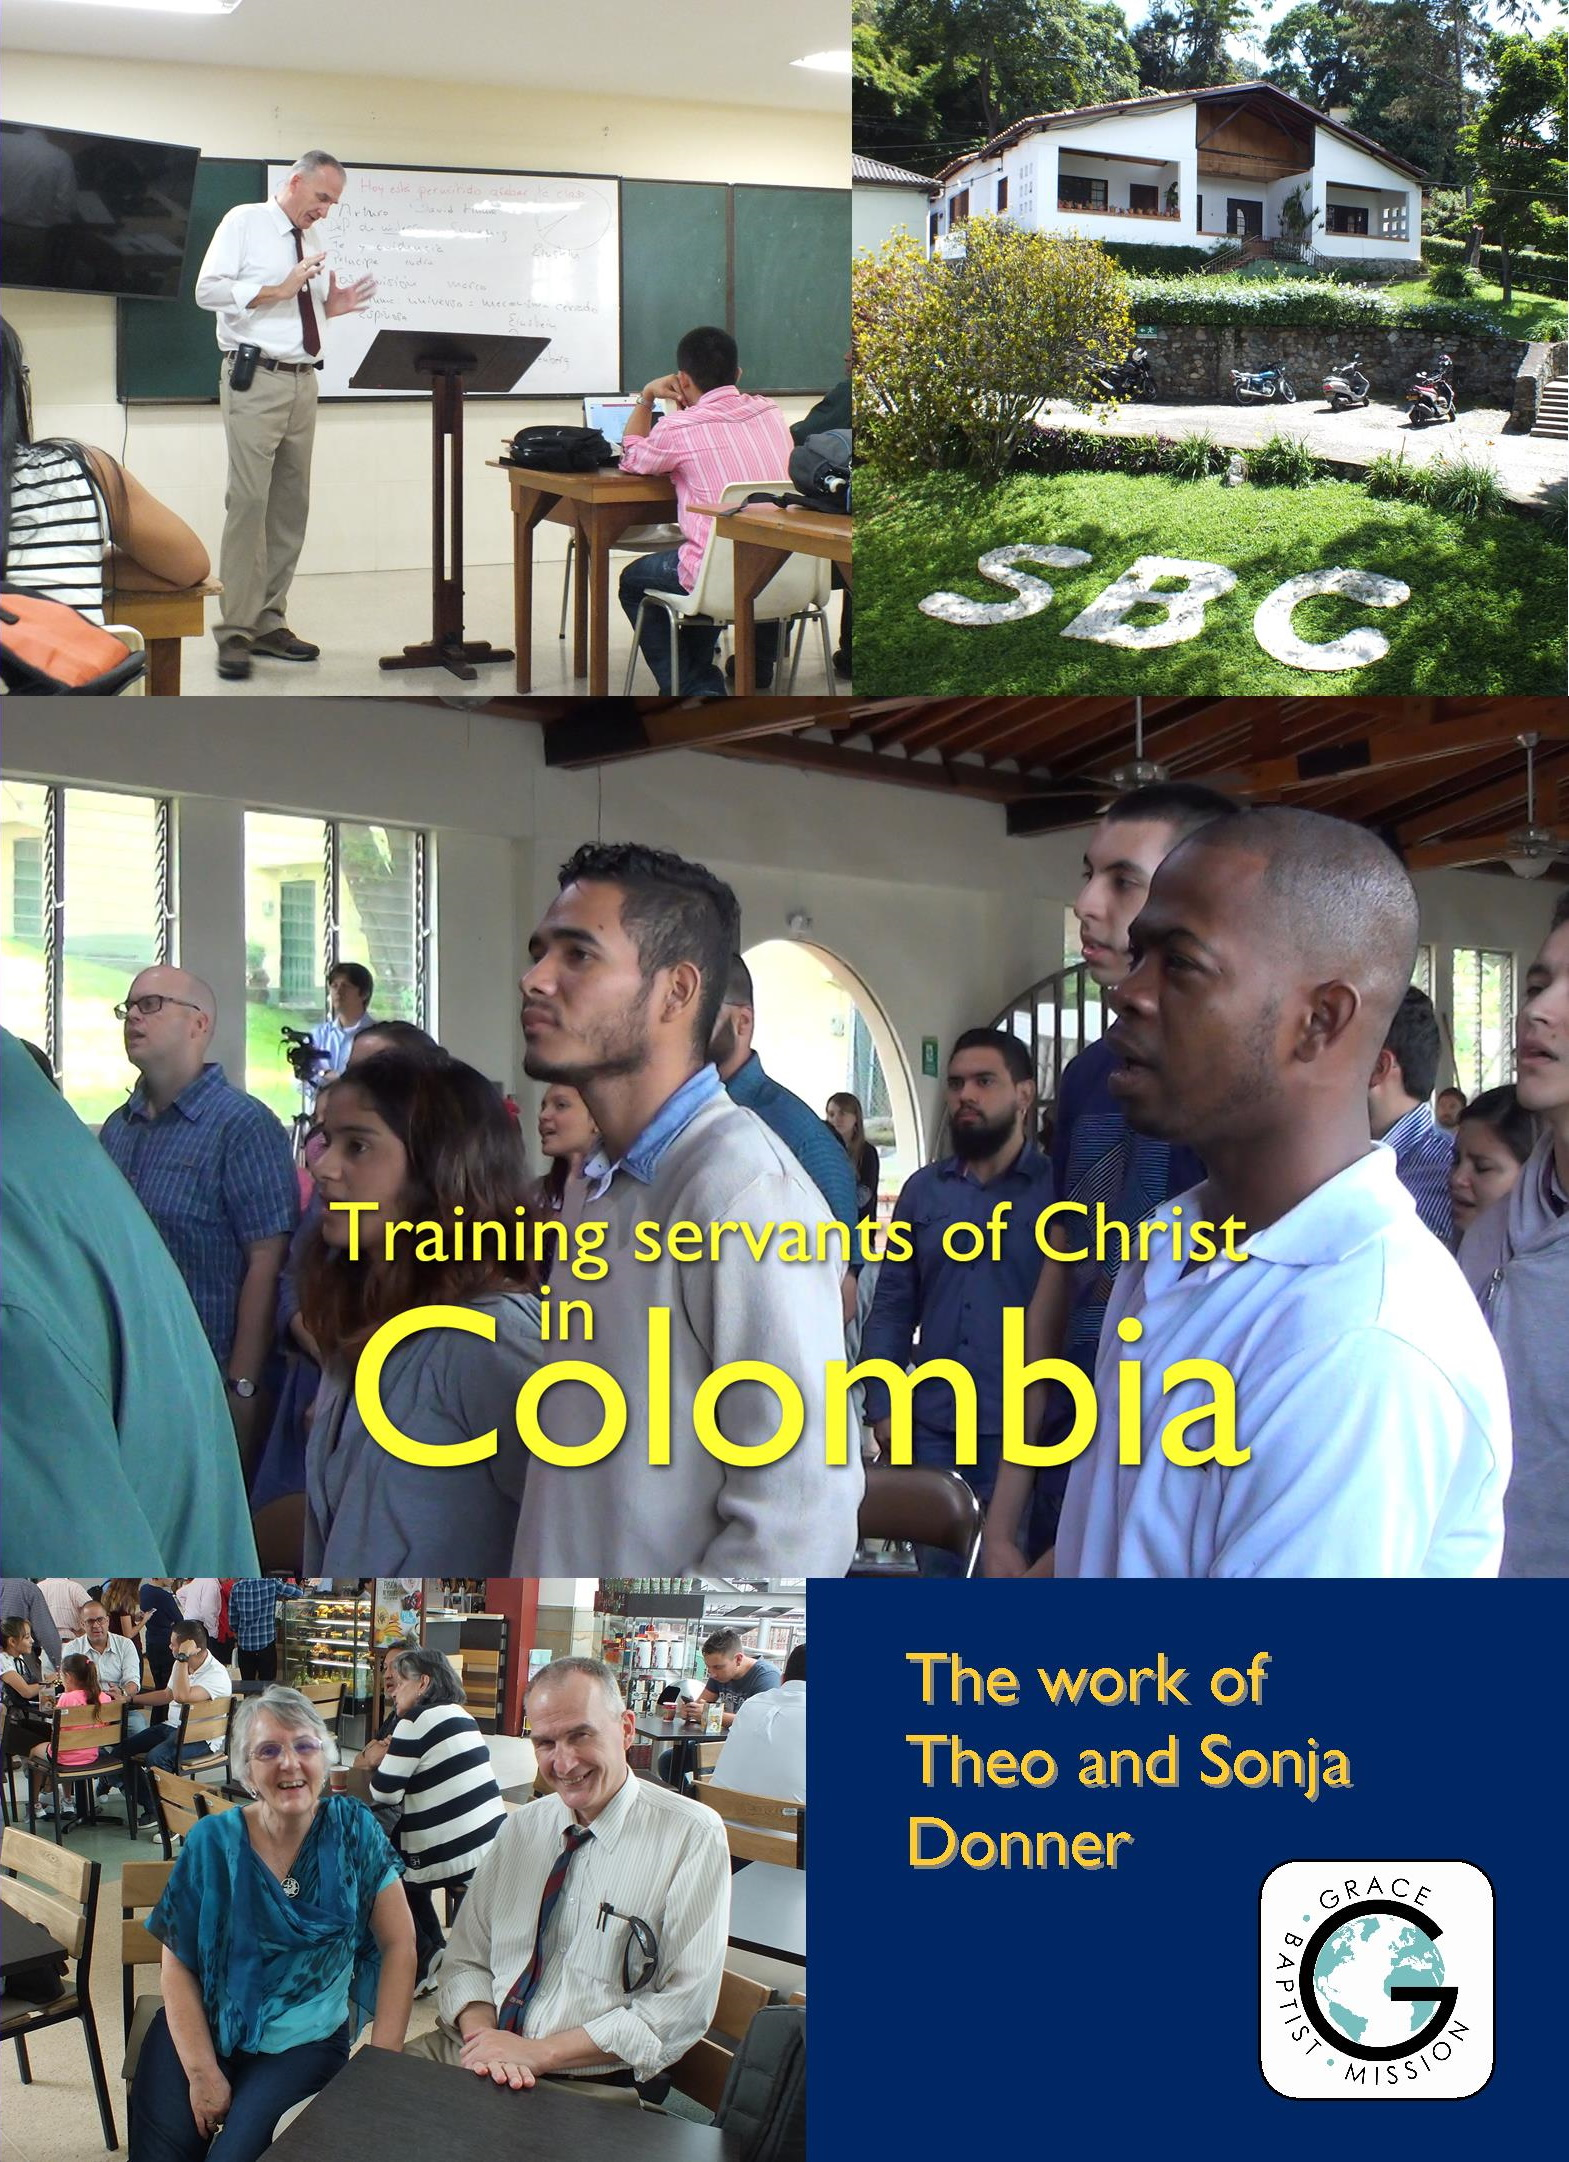 Training Servants of Christ in Colombia